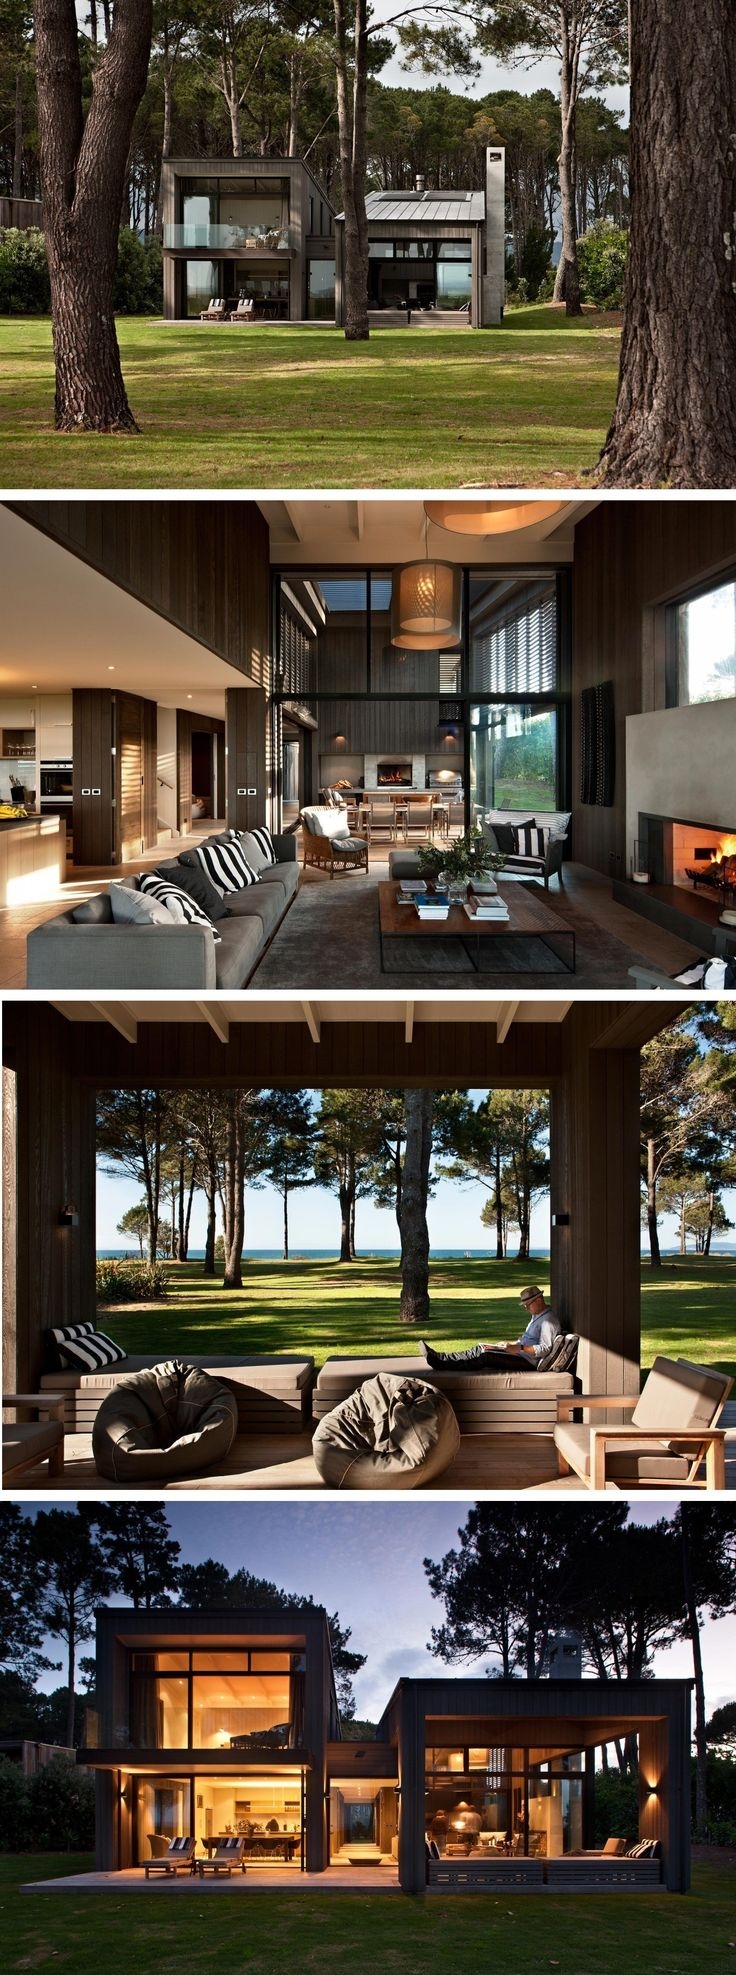 The Pines / Sumich Chaplin Architects